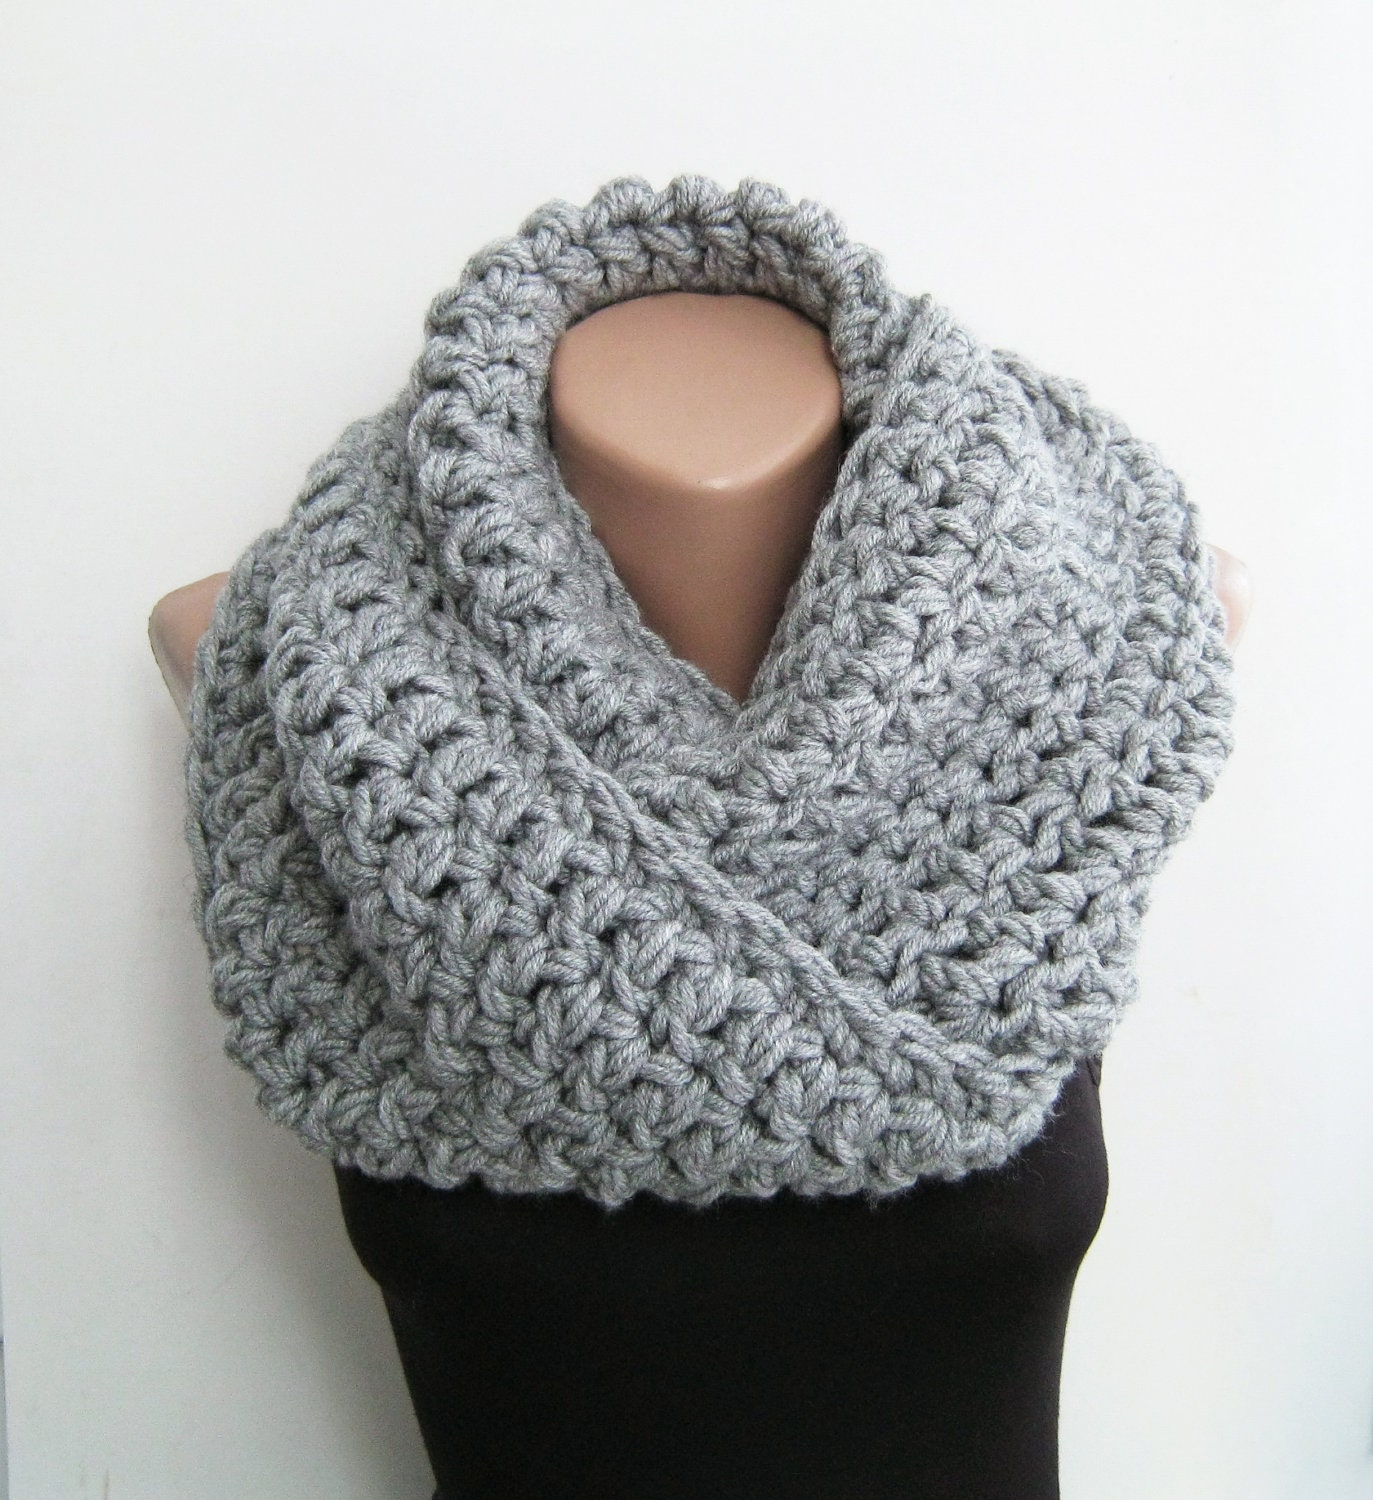 Knitted snood gray chunky scarf crochet infinity by sascarves